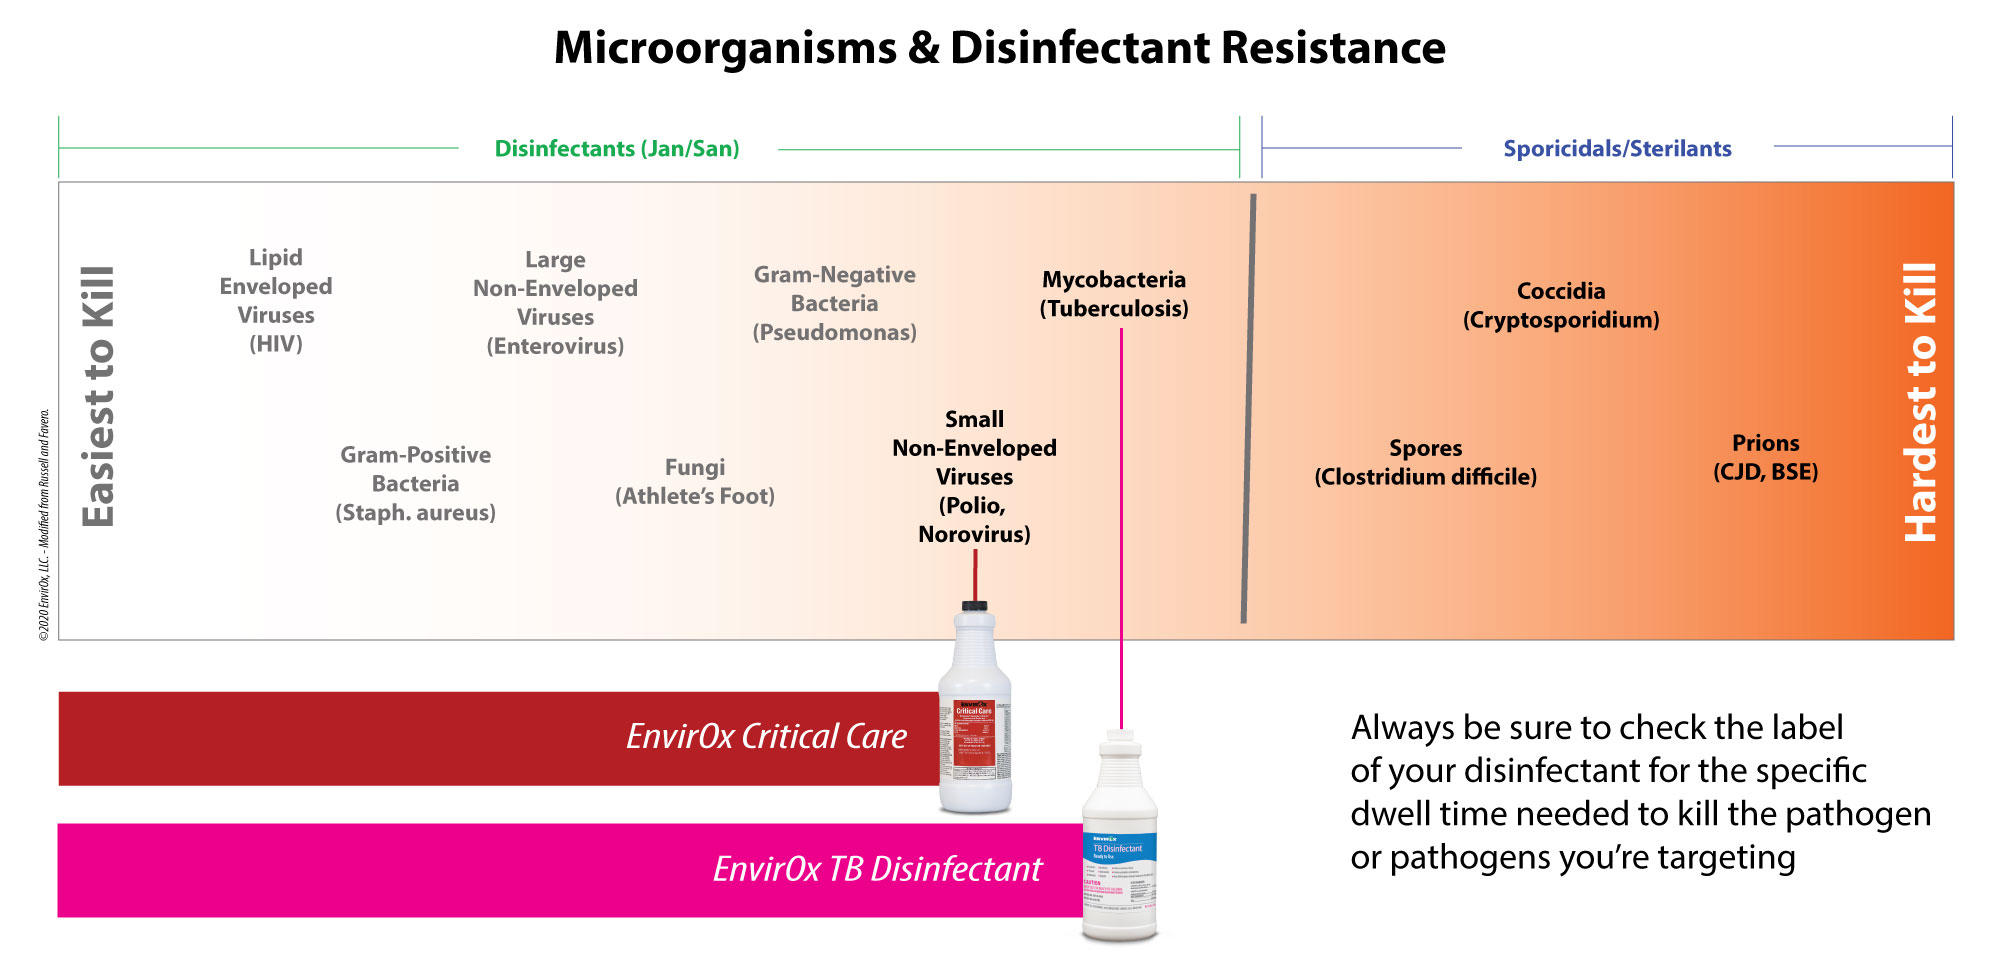 Microorganisms and Disinfectant Resistance Chart